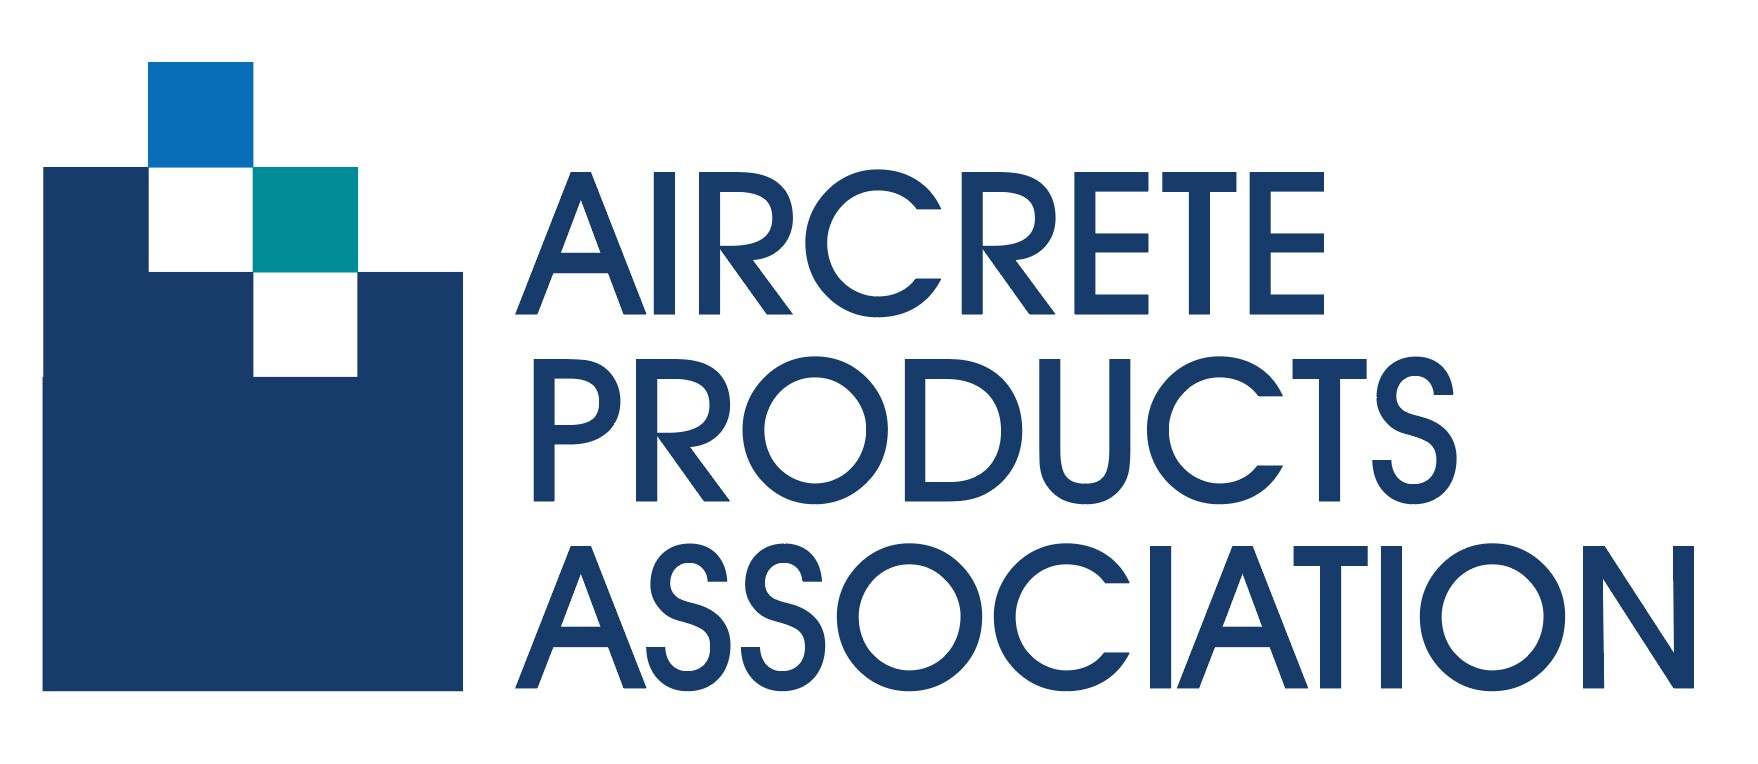 Aircrete Products Association logo